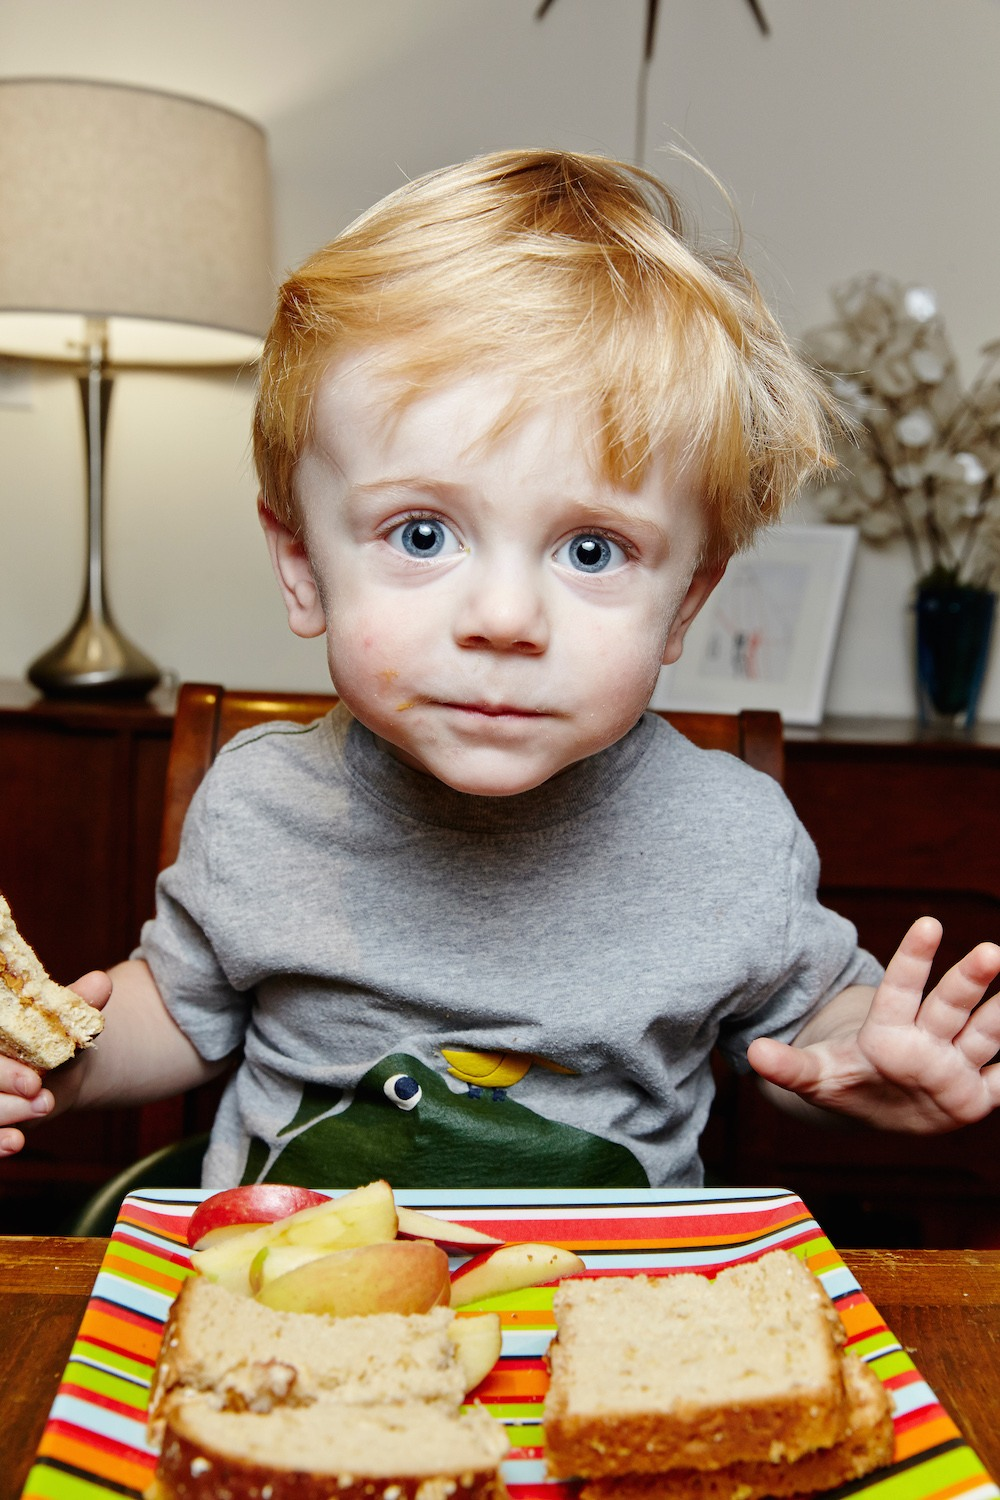 Little-boy-blue-eyes-sandwich-apple-plate.jpg